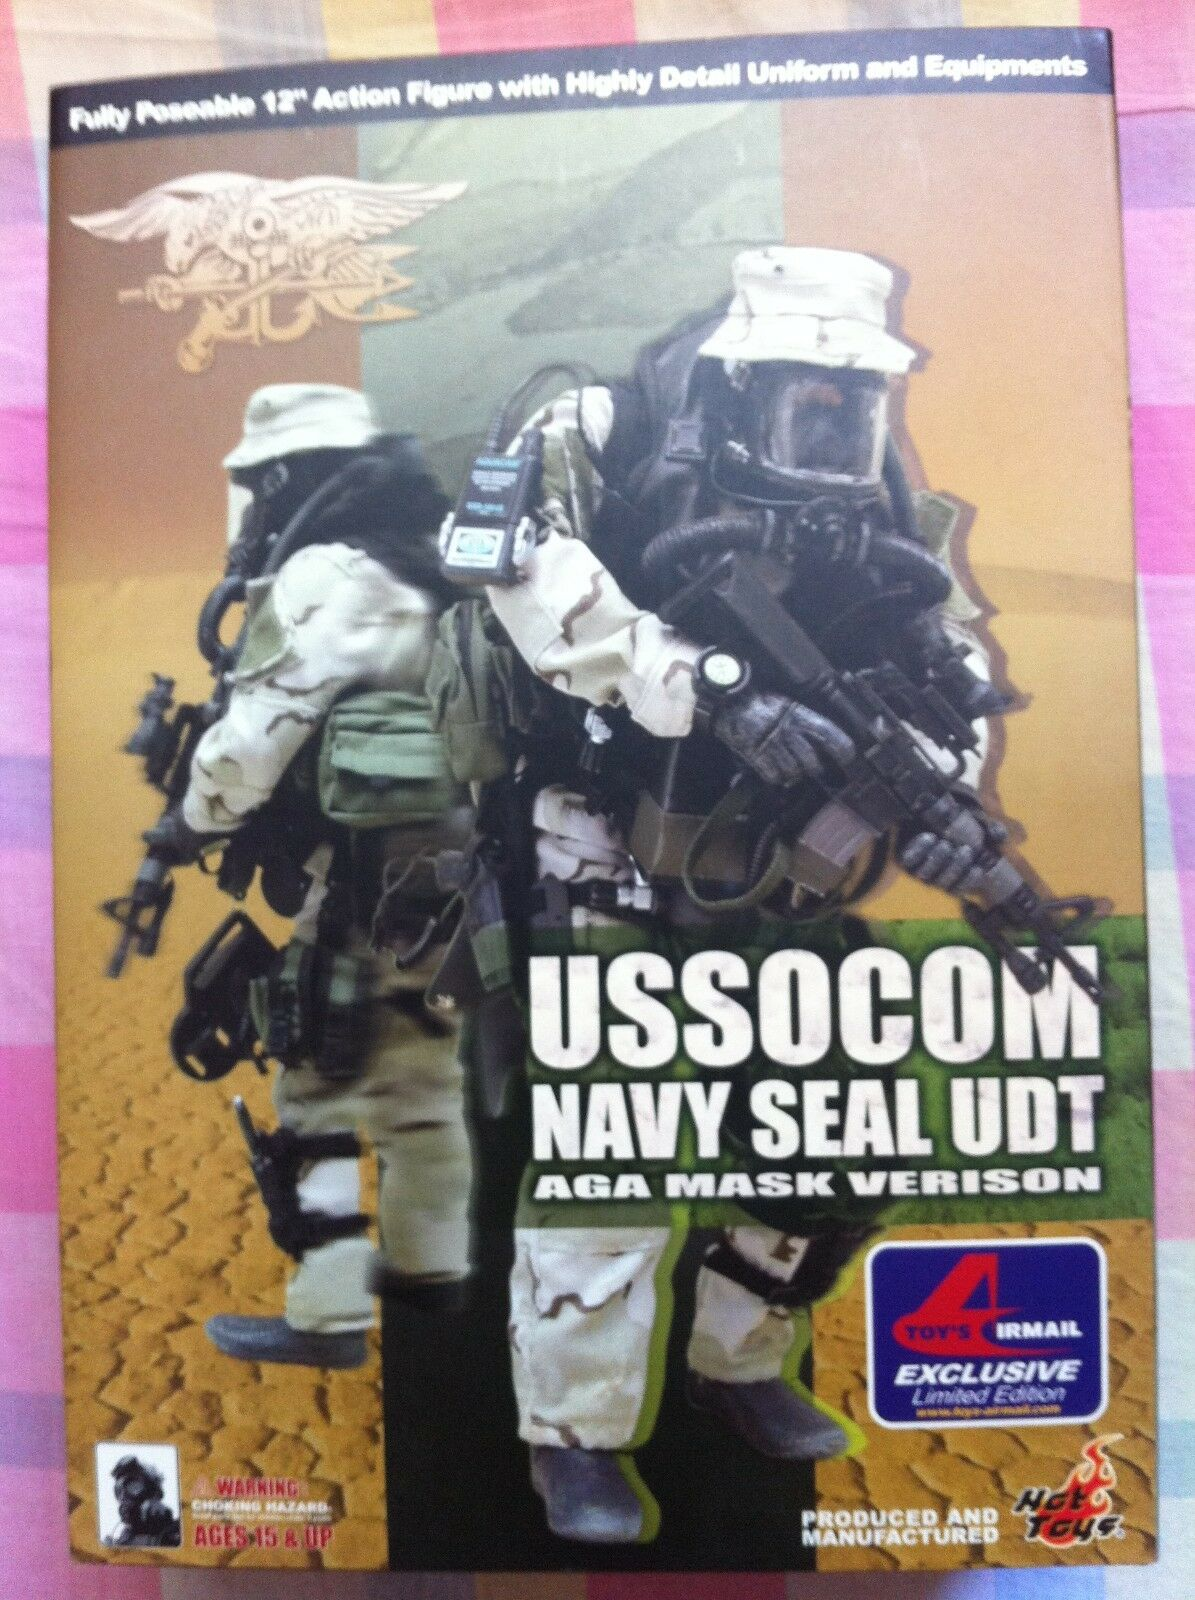 1 6 Hot Toys USSOCOM Navy Seal UDT AGA Mask Version NEW VERY RARE